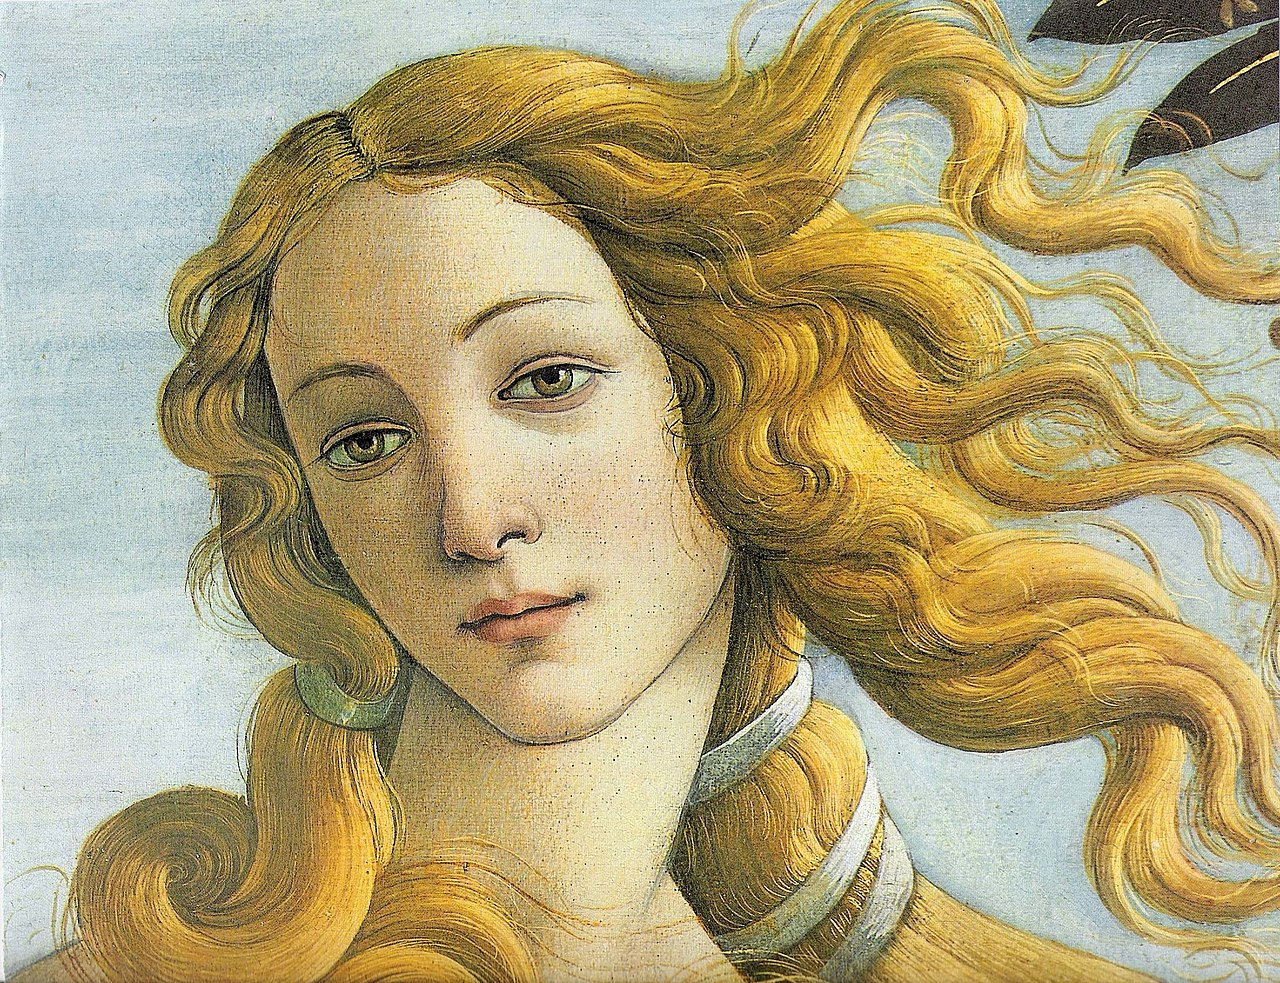 Boticelli's painting